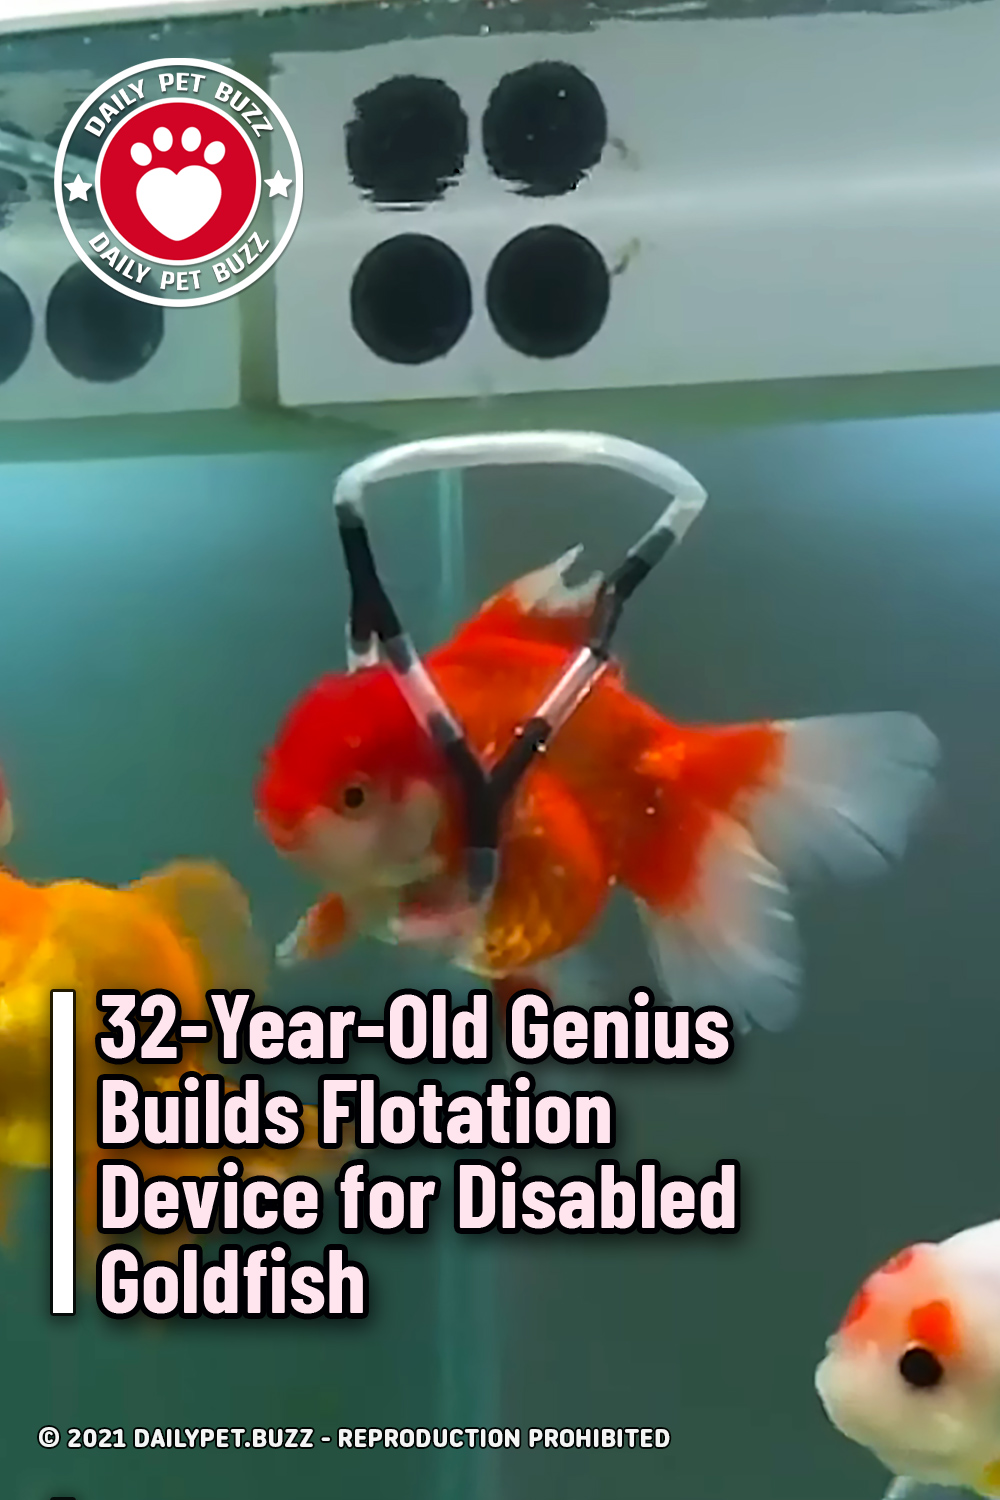 32-Year-Old Genius Builds Flotation Device for Disabled Goldfish